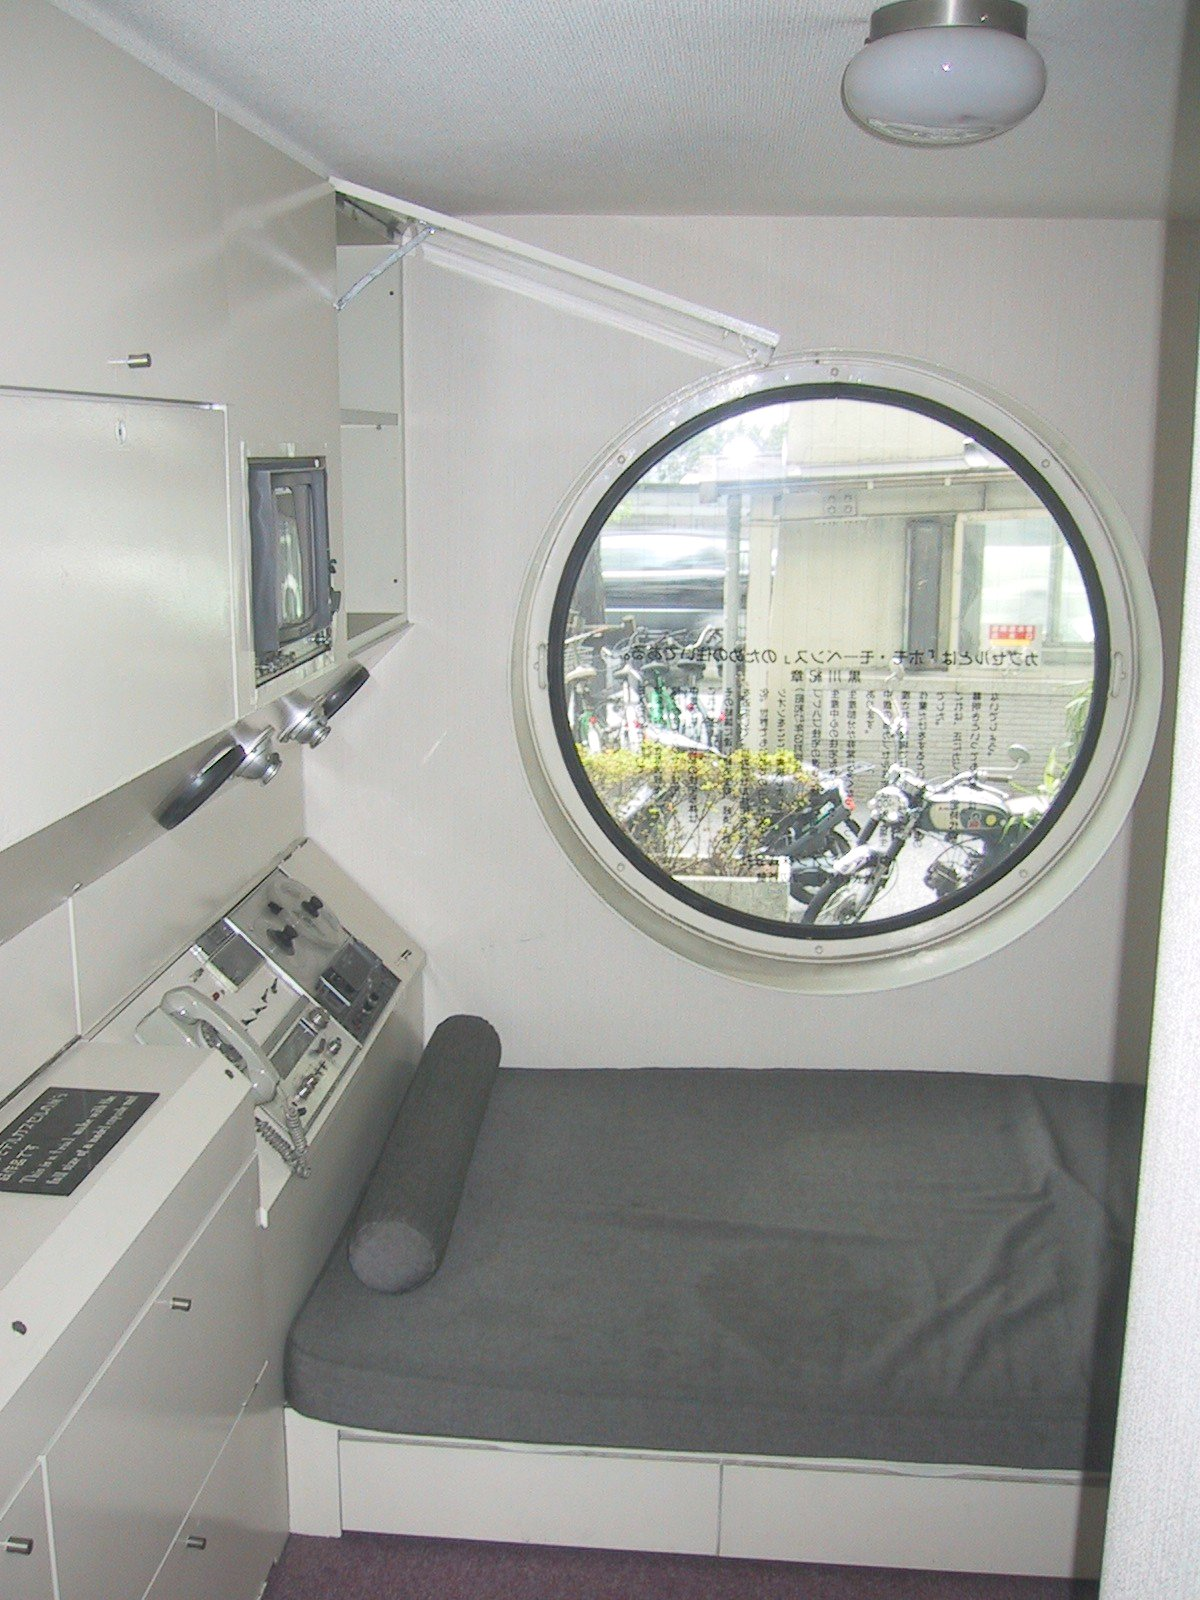 A sample room within the Nakagin Capsule Tower